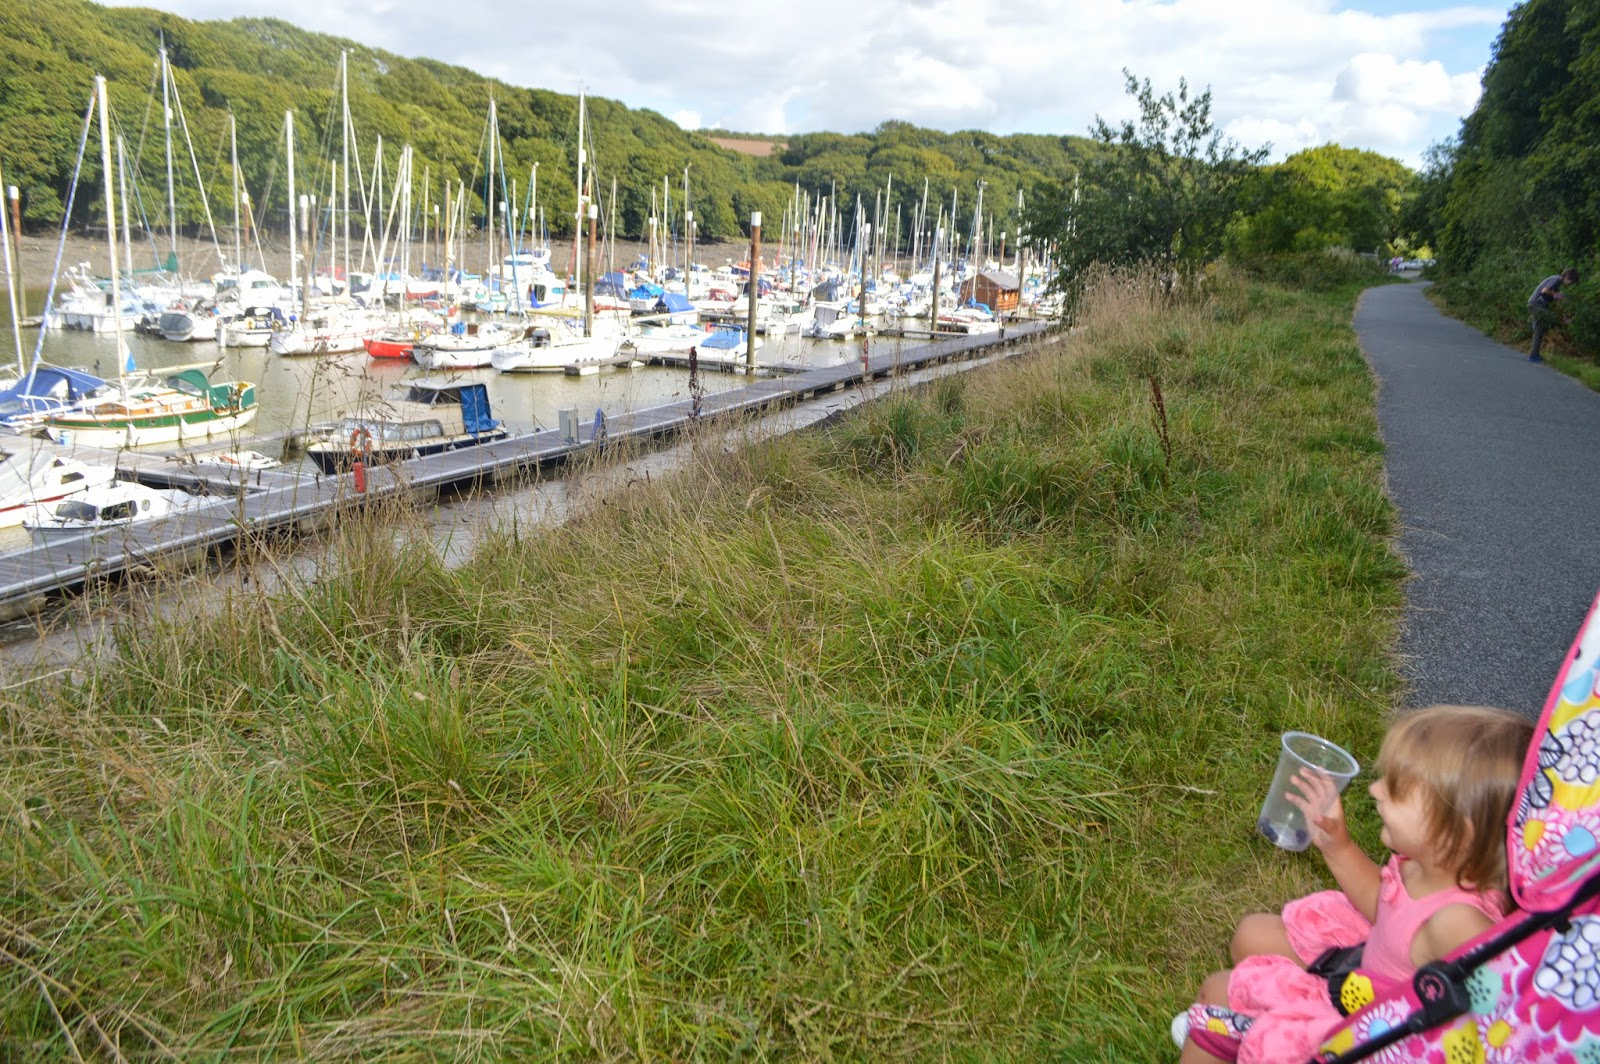 Blackberry Picking, Neyland, Marina, Pembrokeshire, Crumble, Apple Pie, Baking, country kids, Wales